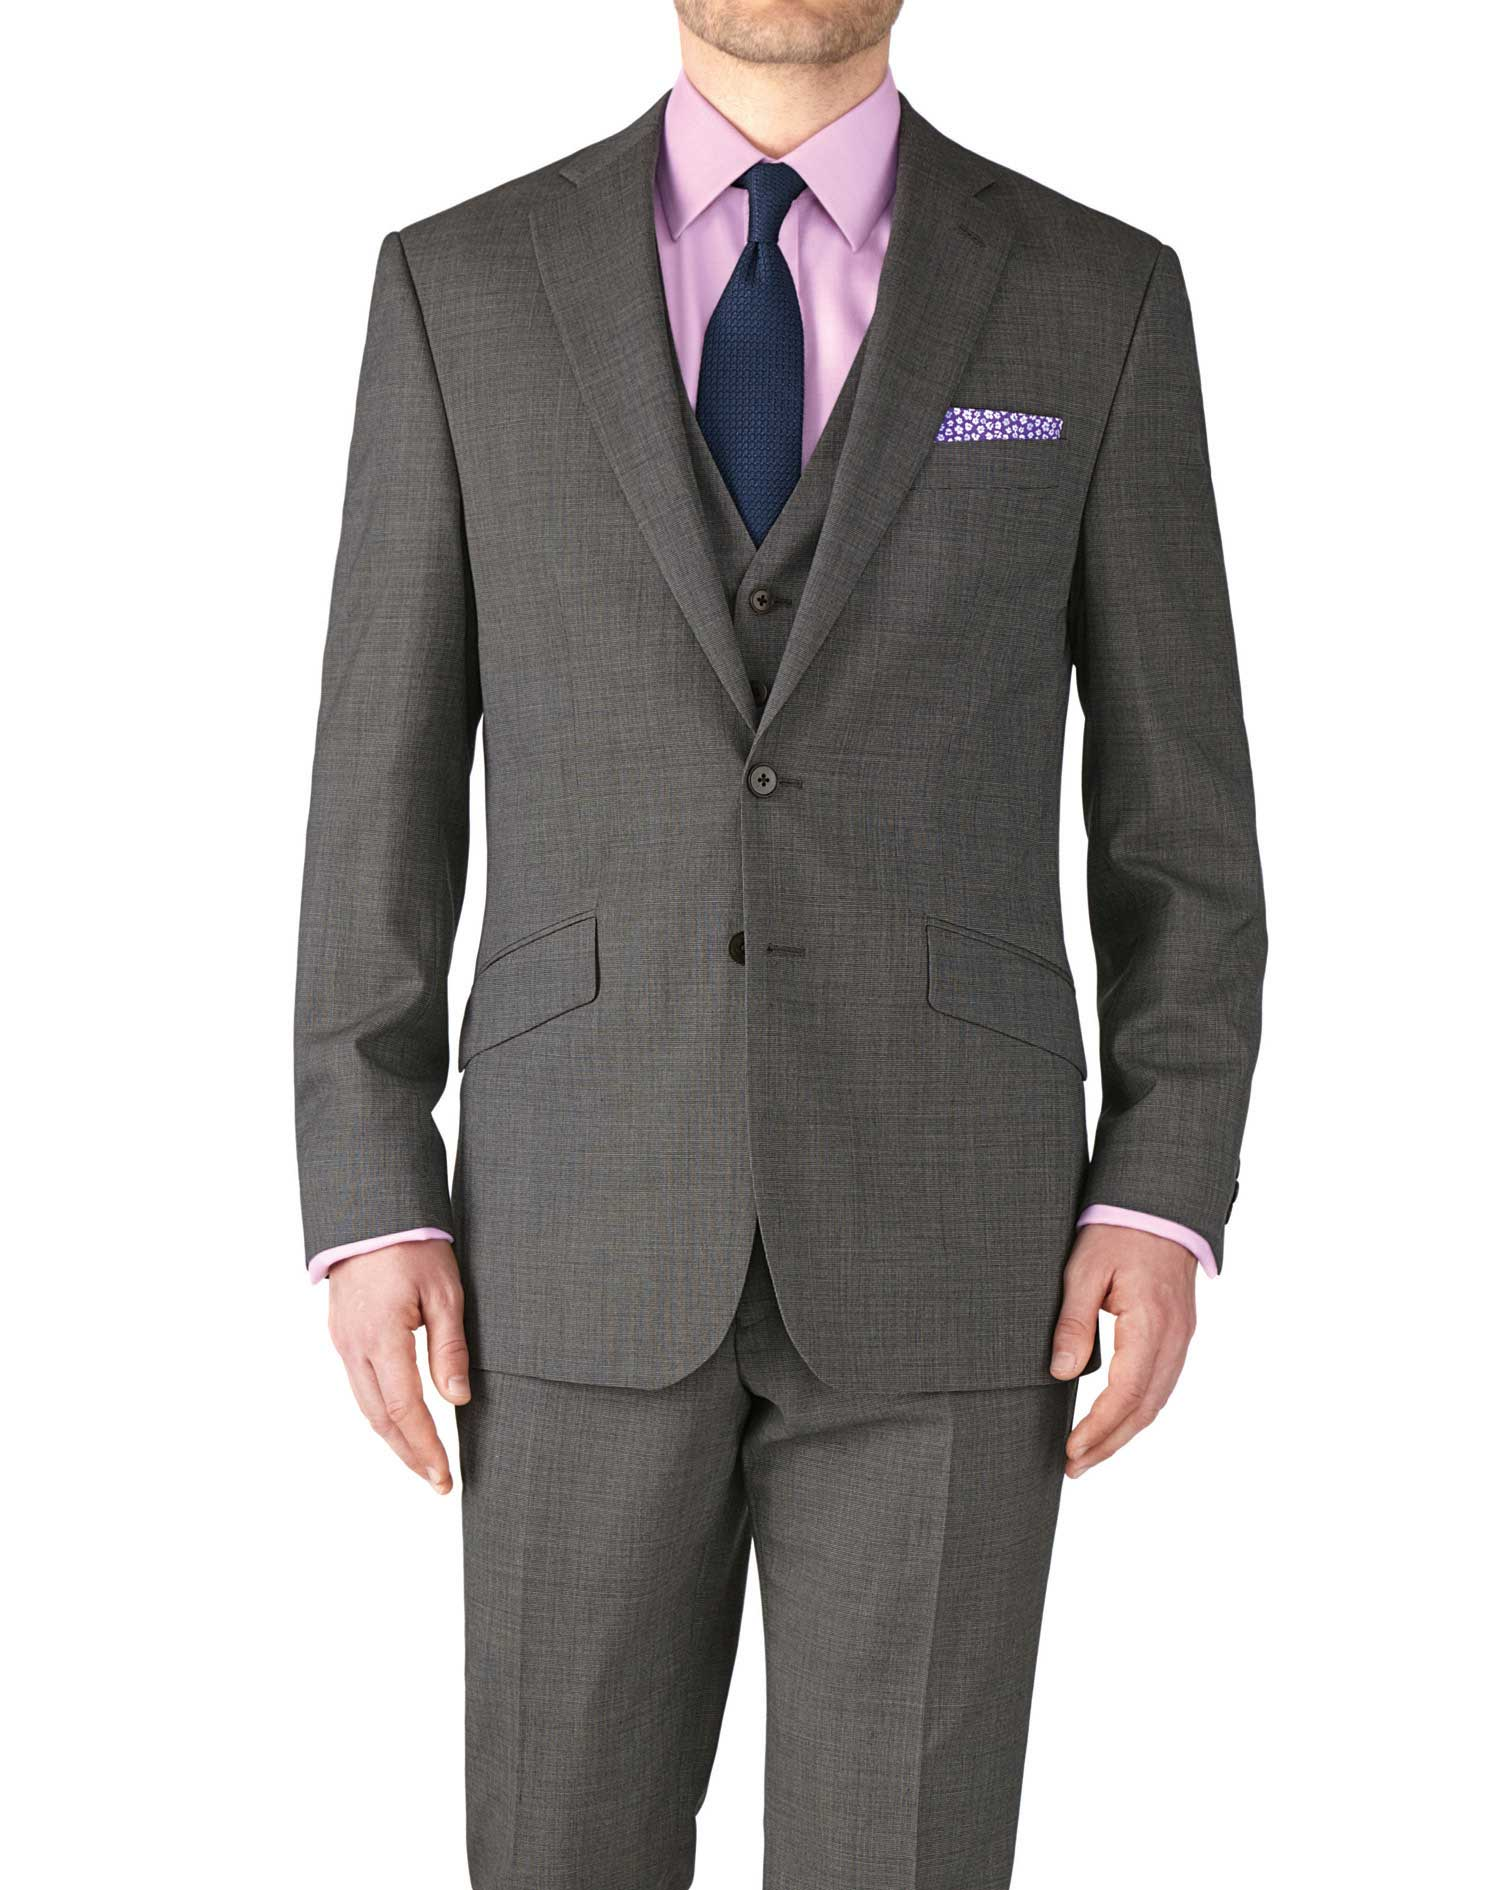 Grey Slim Fit End-On-End Business Suit Wool Jacket Size 42 Short by Charles Tyrwhitt